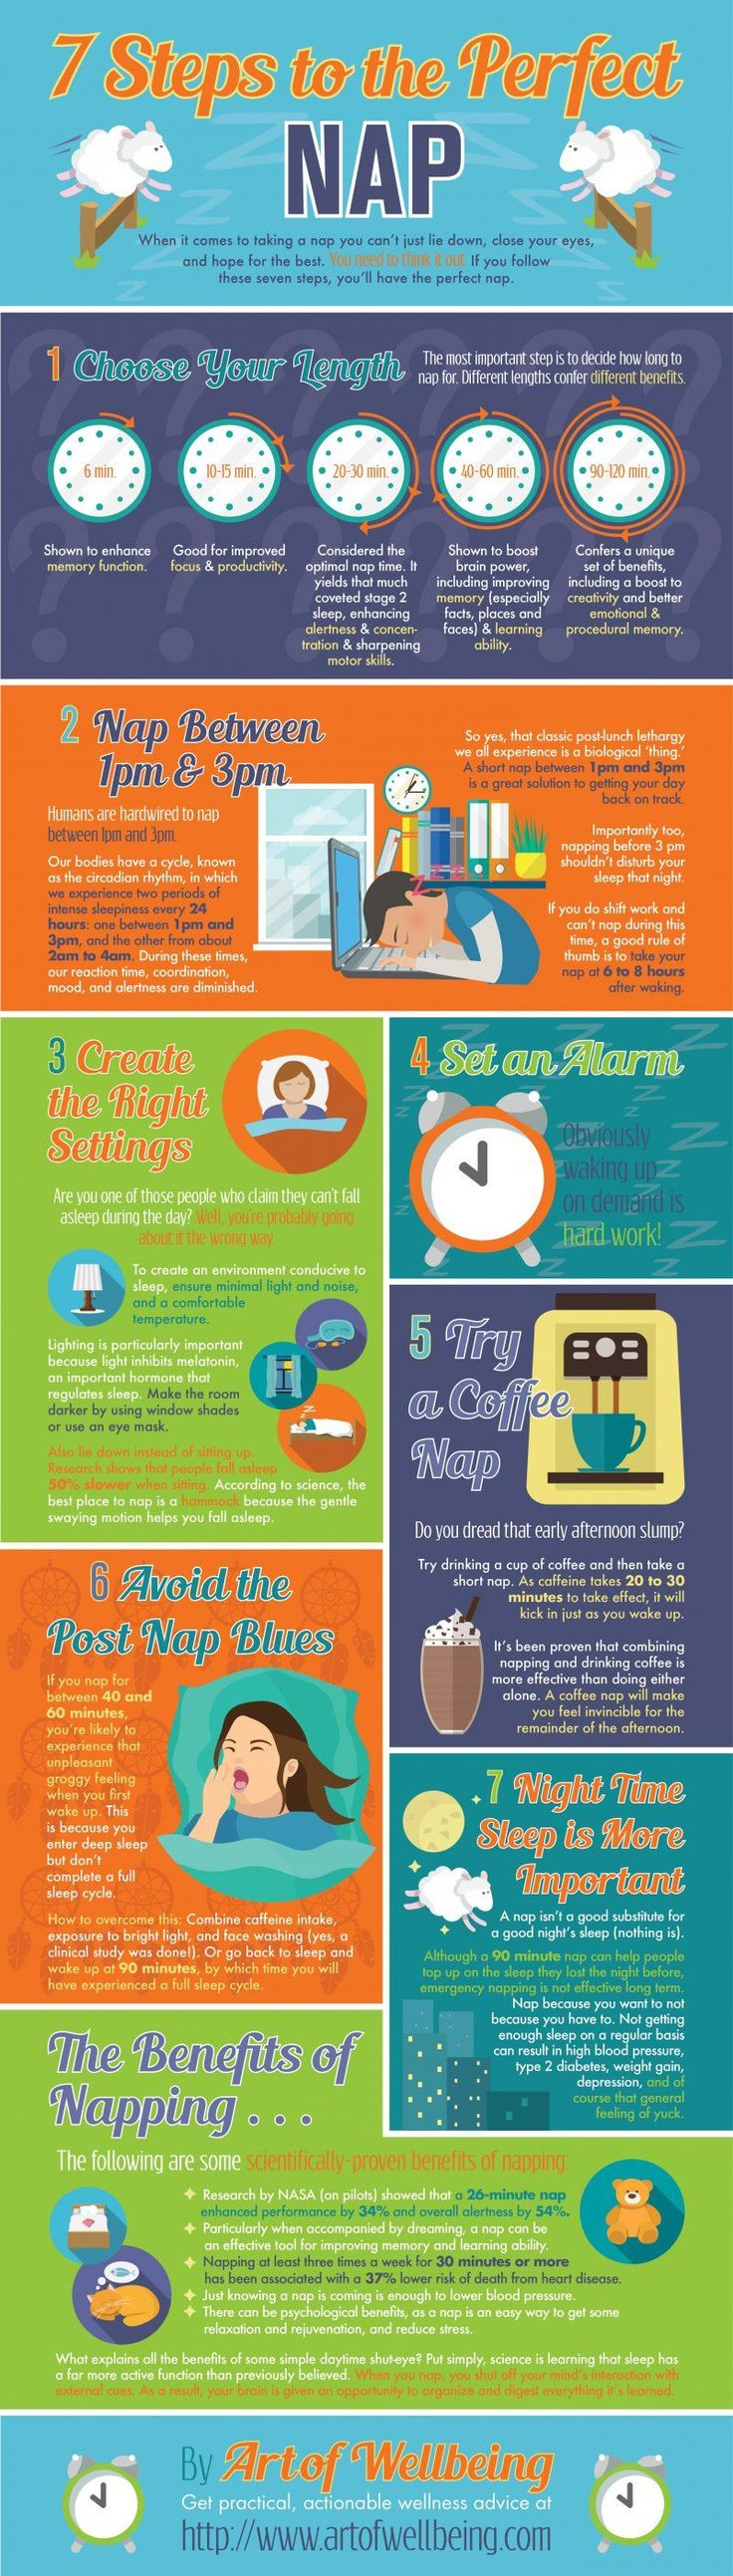 Have a nap to improve productivity and creativity | Infographic | Creative Bloq